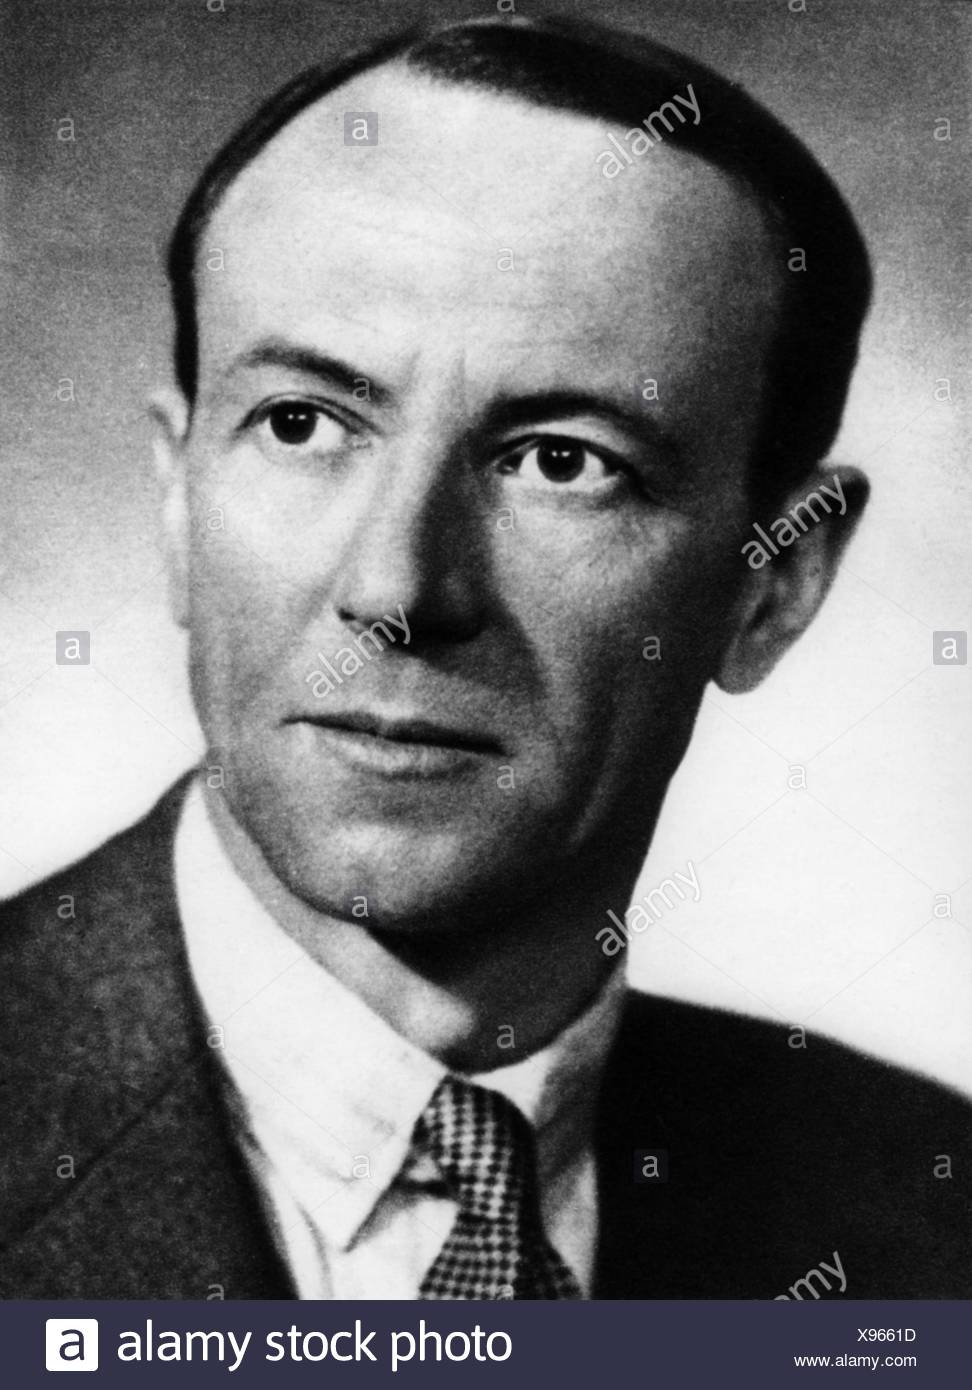 Chadwick, James, 20.10.1891 - 24.7.1974, British scientist (physicist), portrait, 1930s, 30s, Additional-Rights-Clearances-NA - Stock Image